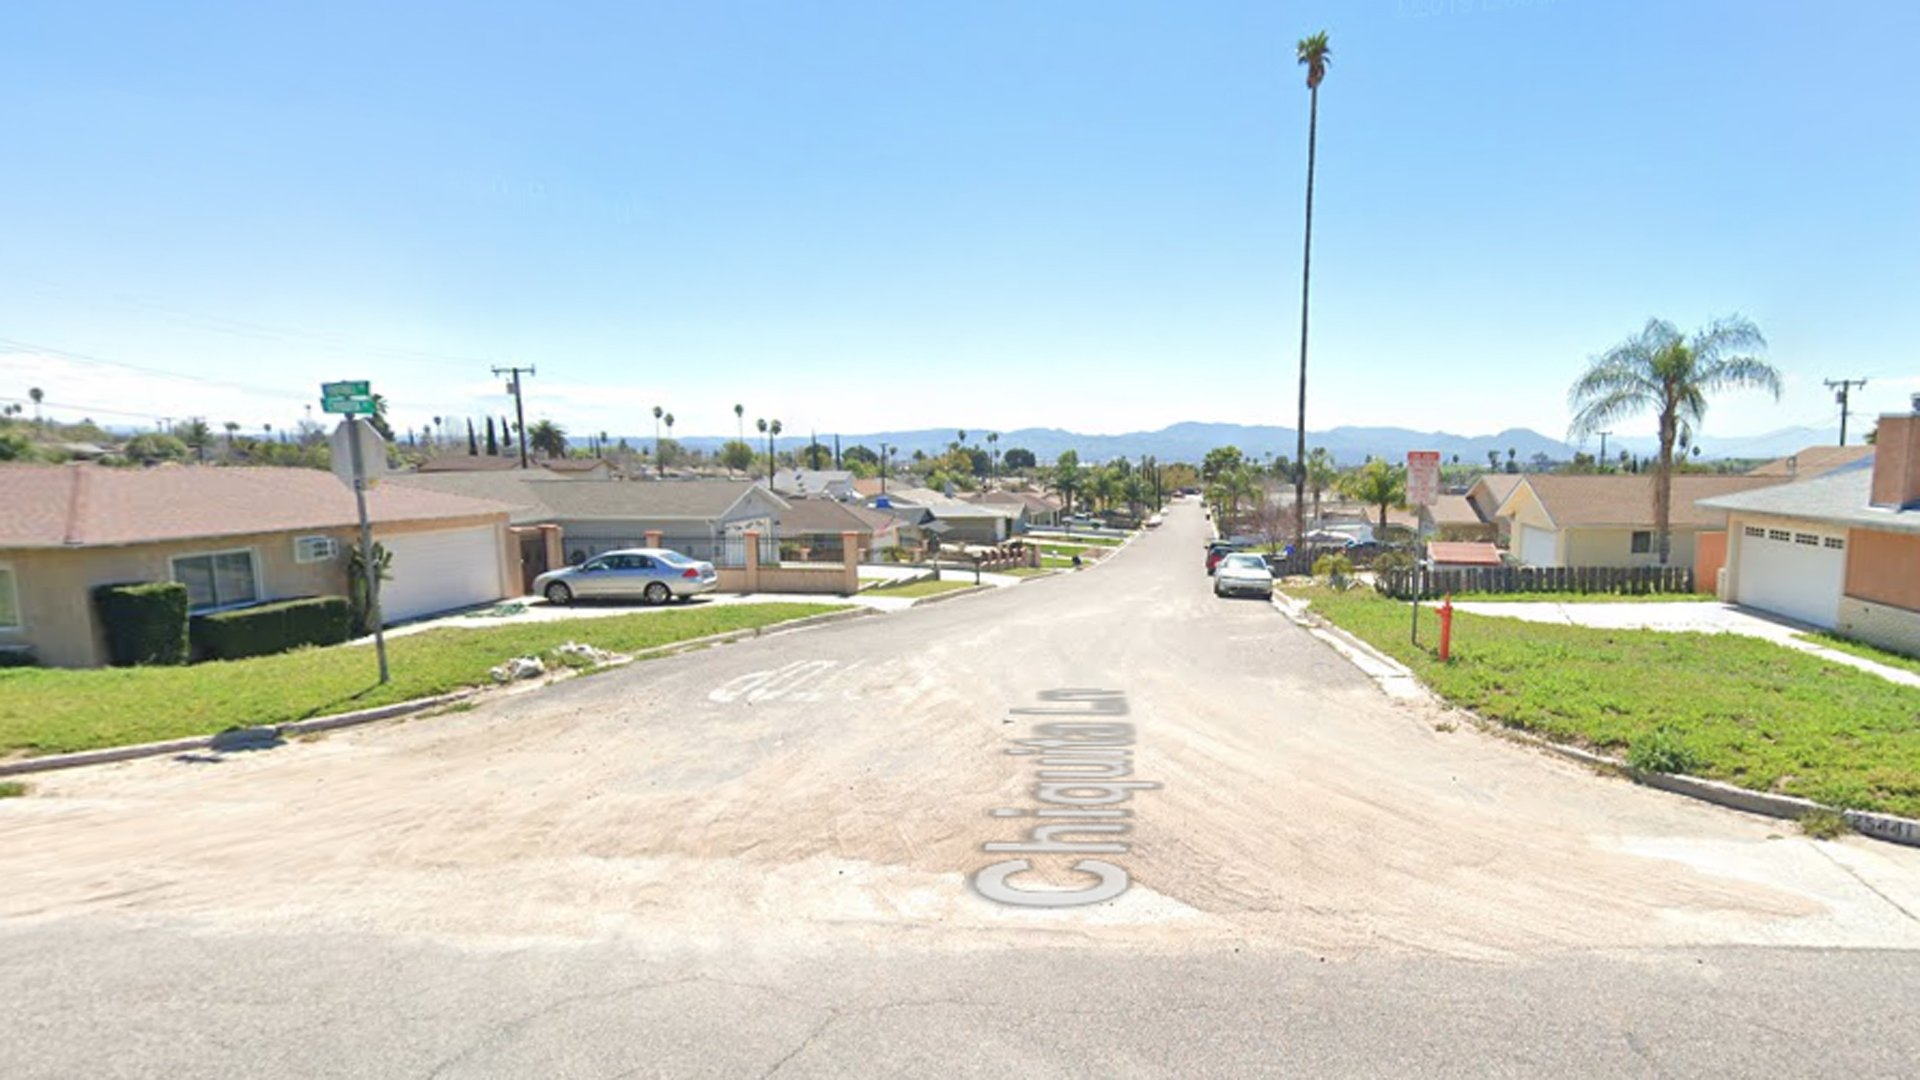 The 5300 block of Chiquita Lane in San Bernardino, as viewed in a Google Street View image.